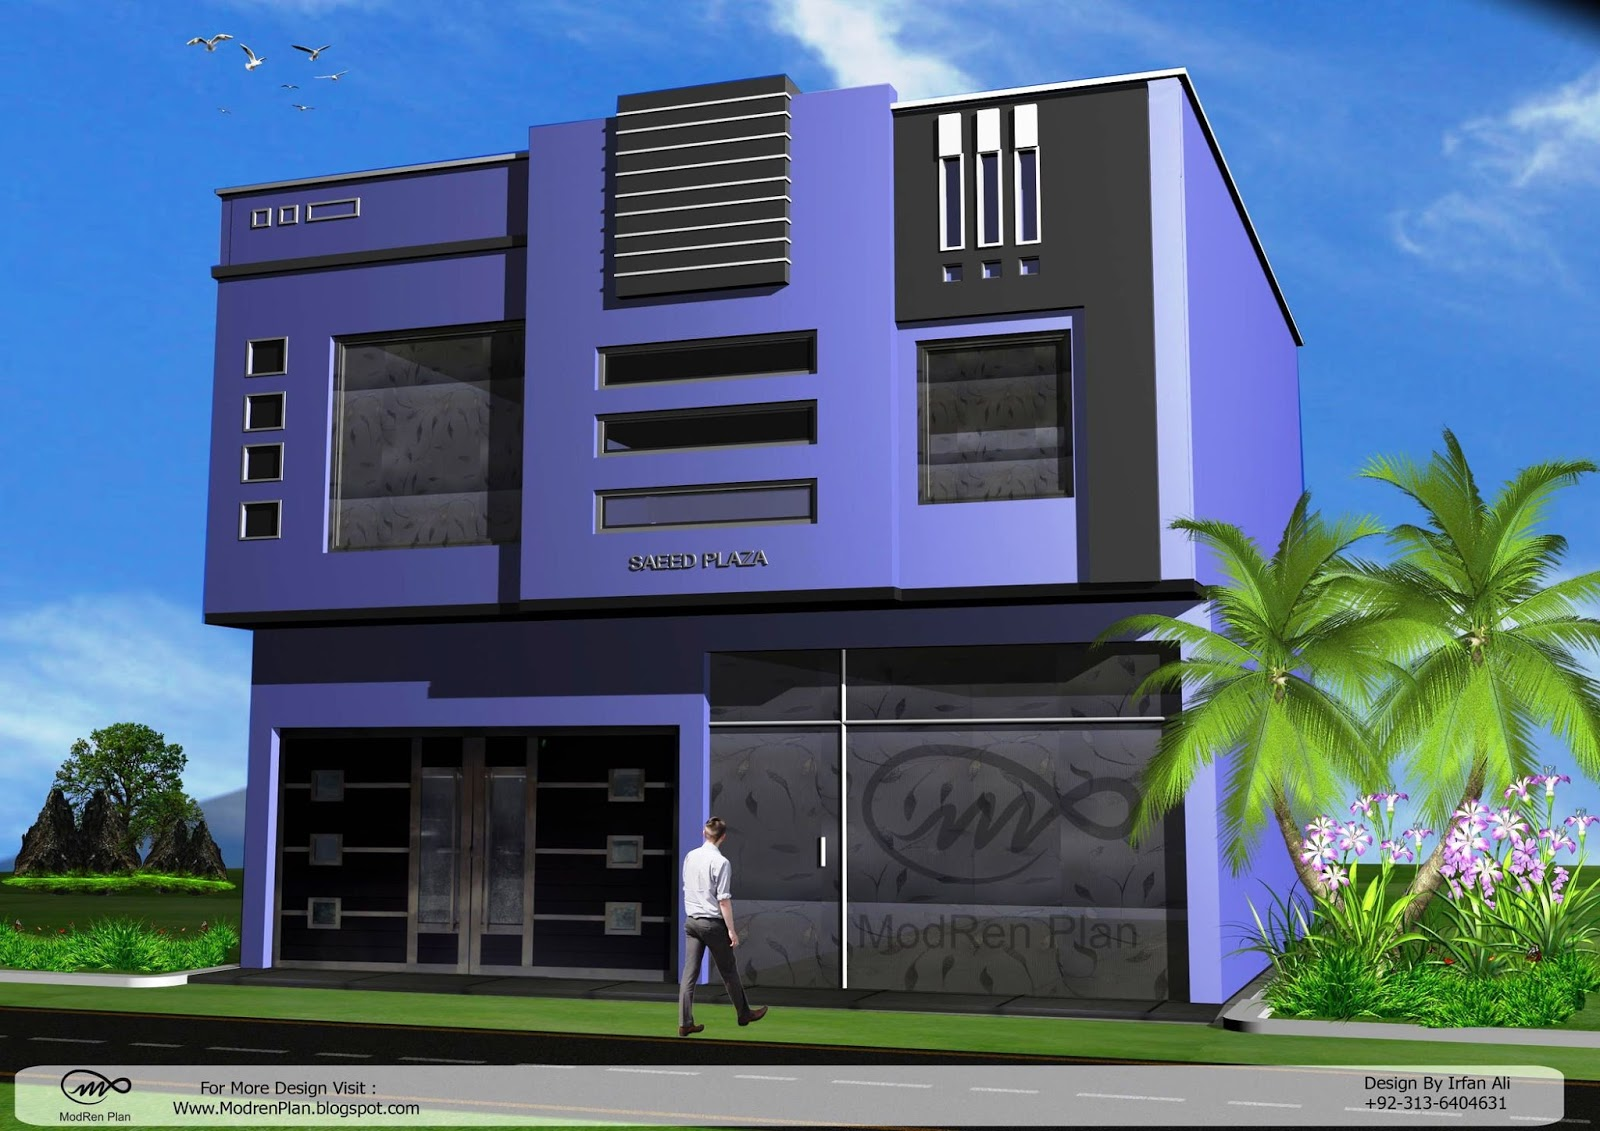 Office Building Front Elevation : Modern commercial building designs and plaza front elevation